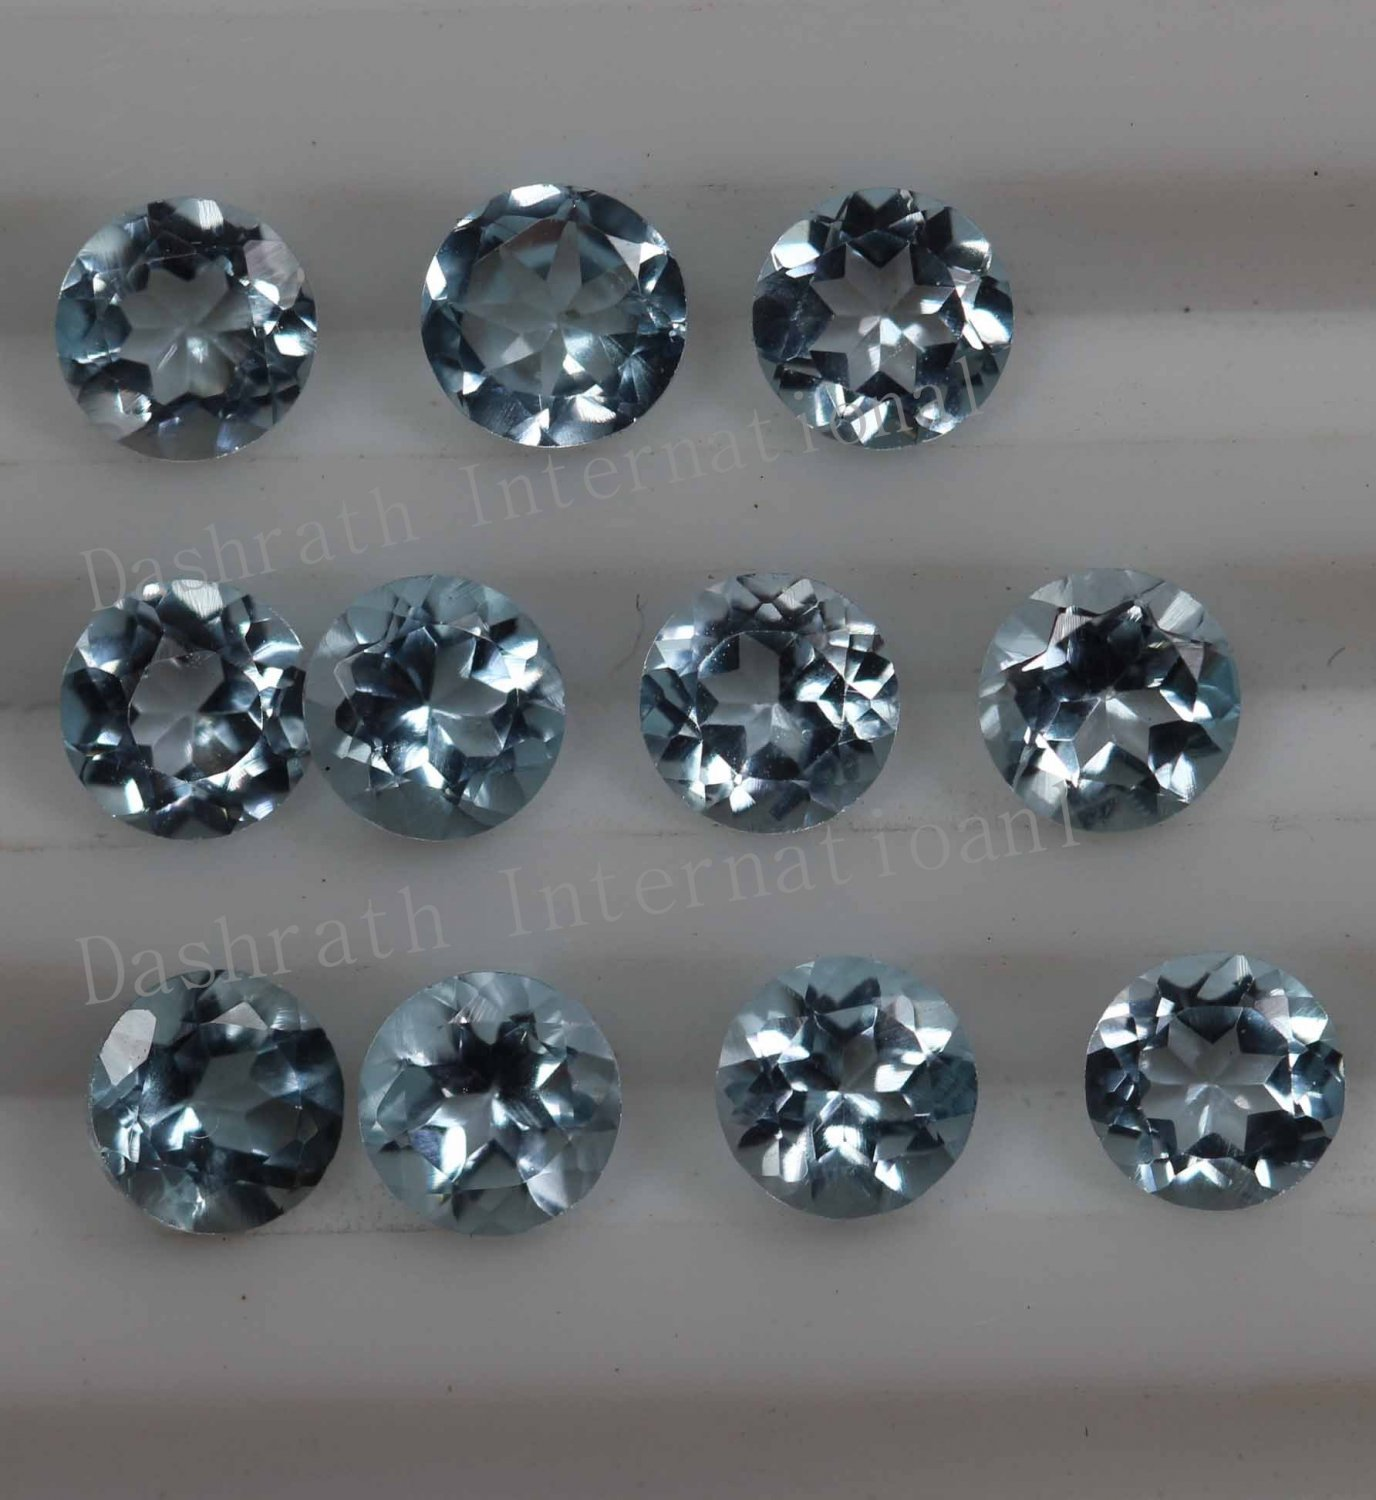 6mmNatural Sky Blue Topaz Faceted Cut Round 50 Pieces Lot Blue Color  Top Quality Loose Gemstone